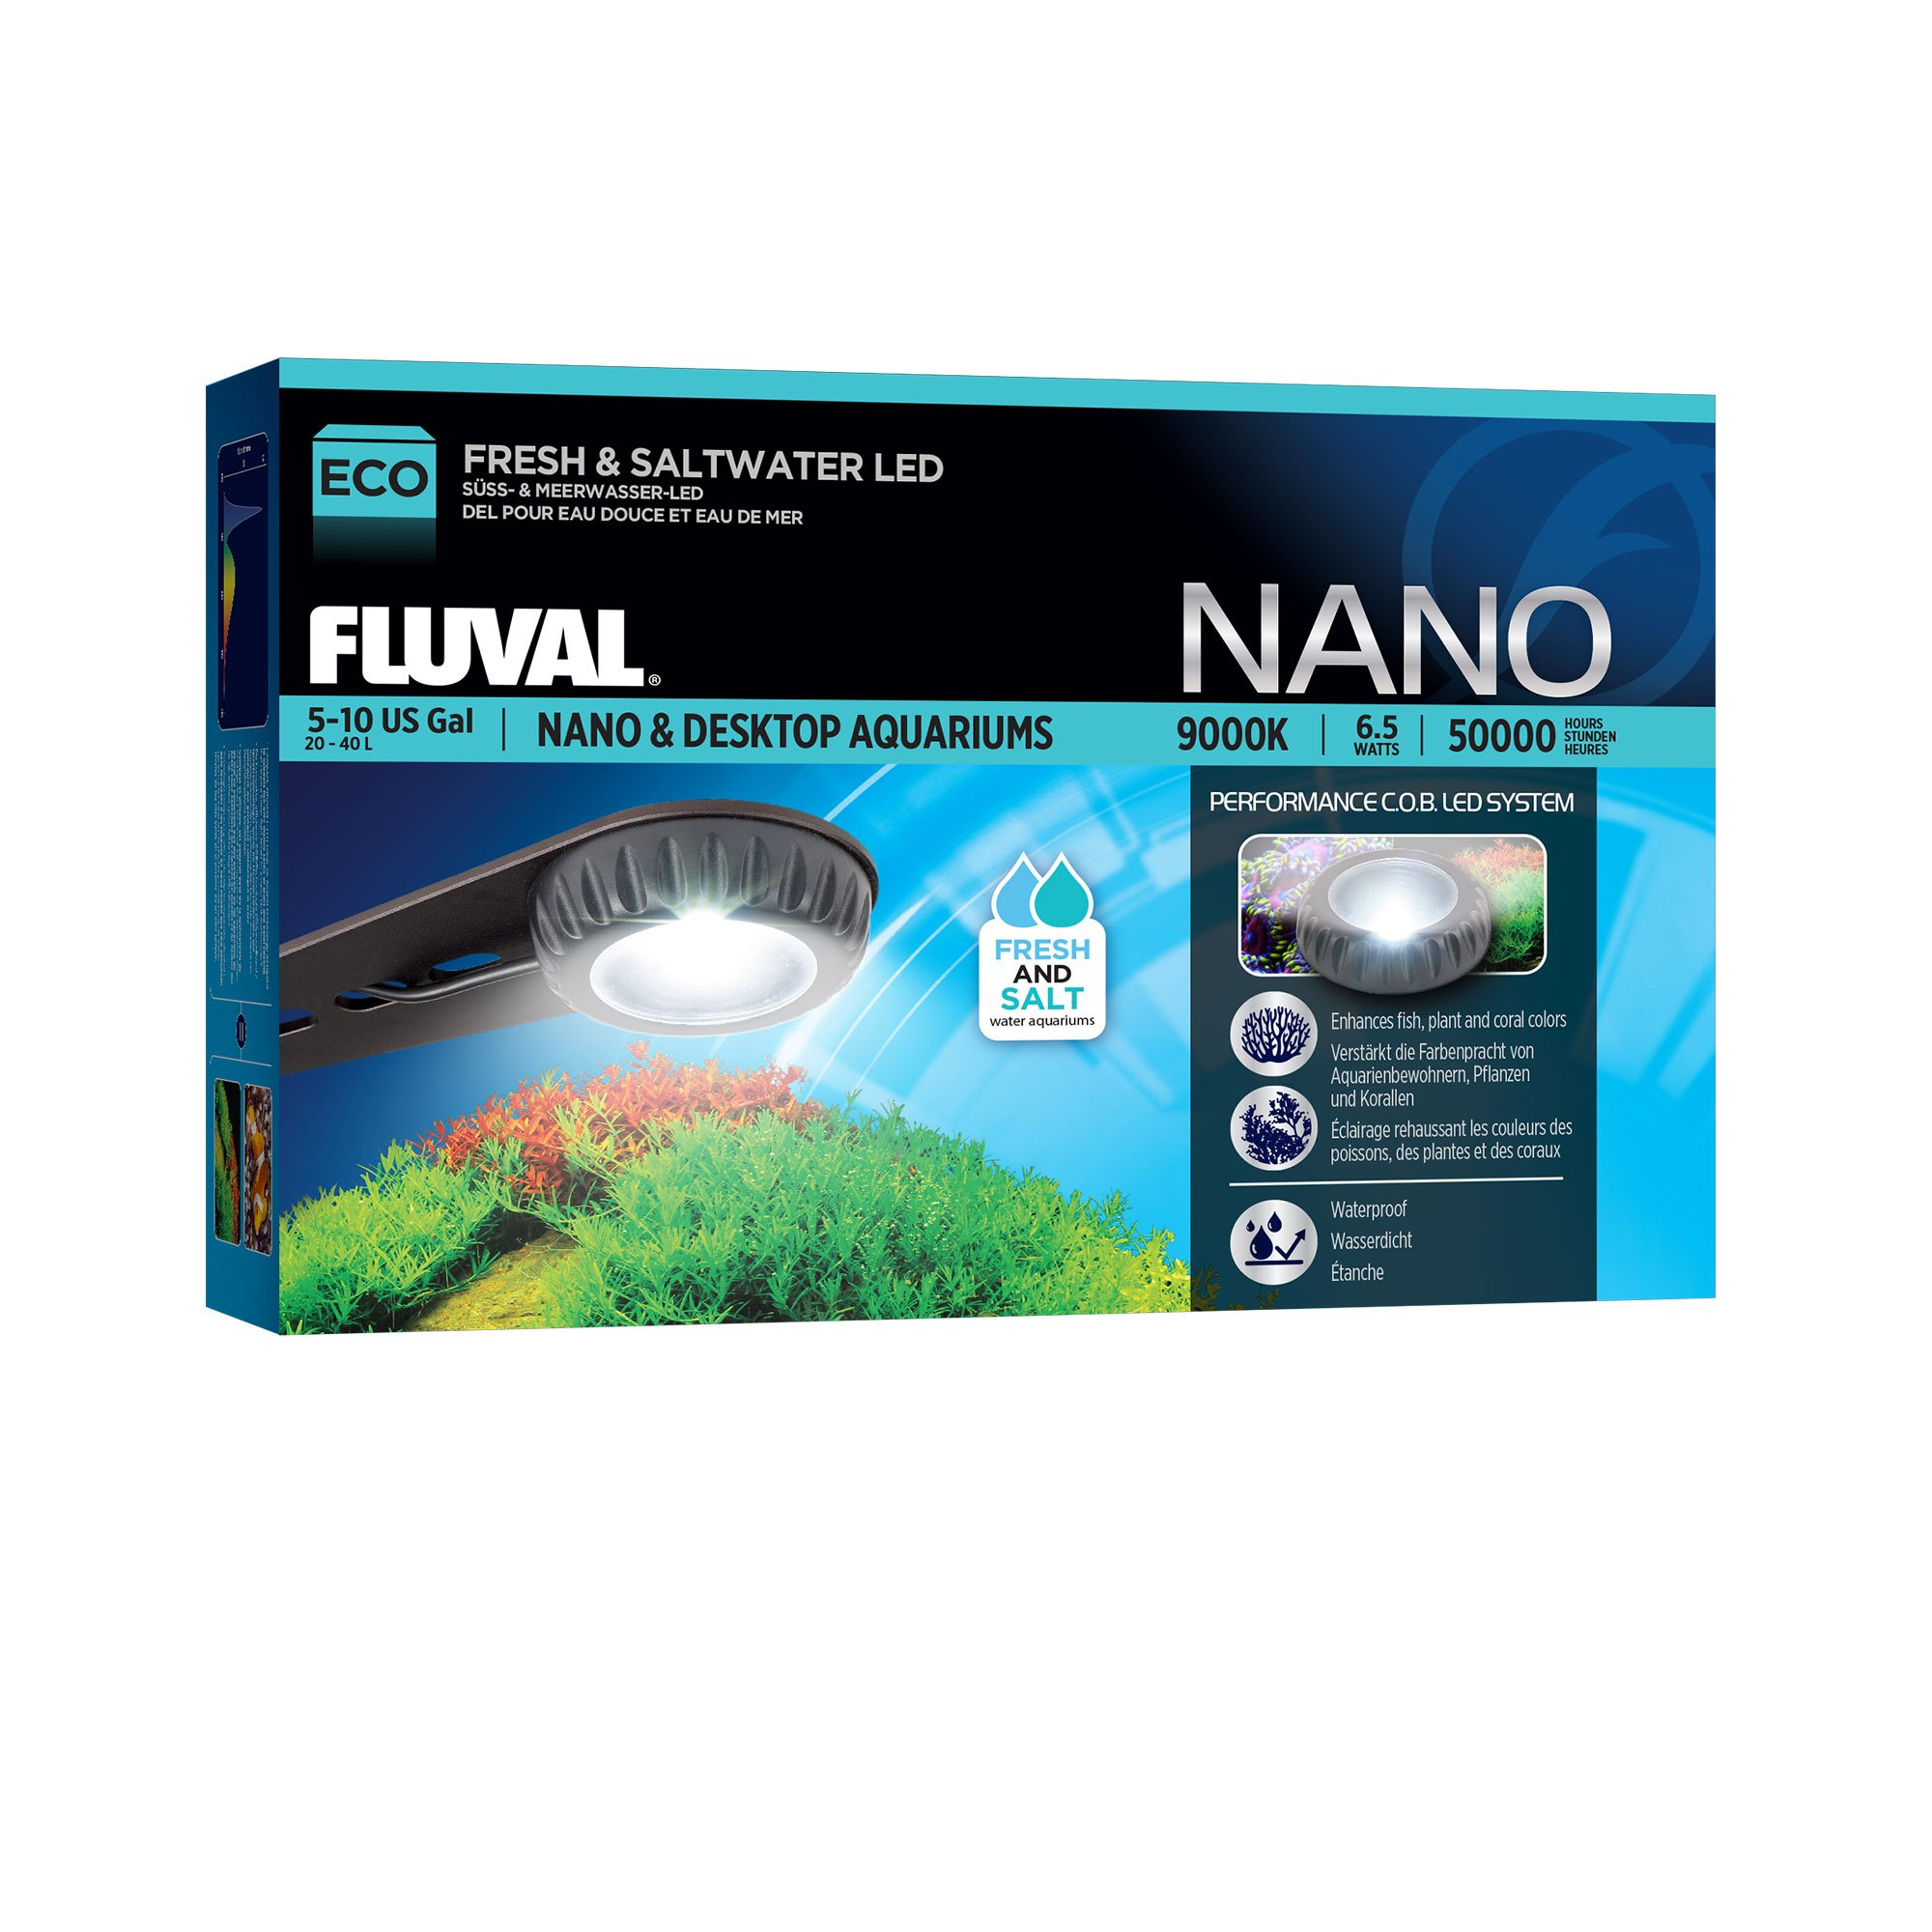 Fluval Eco Nano & Desktop LED Aquarium Light